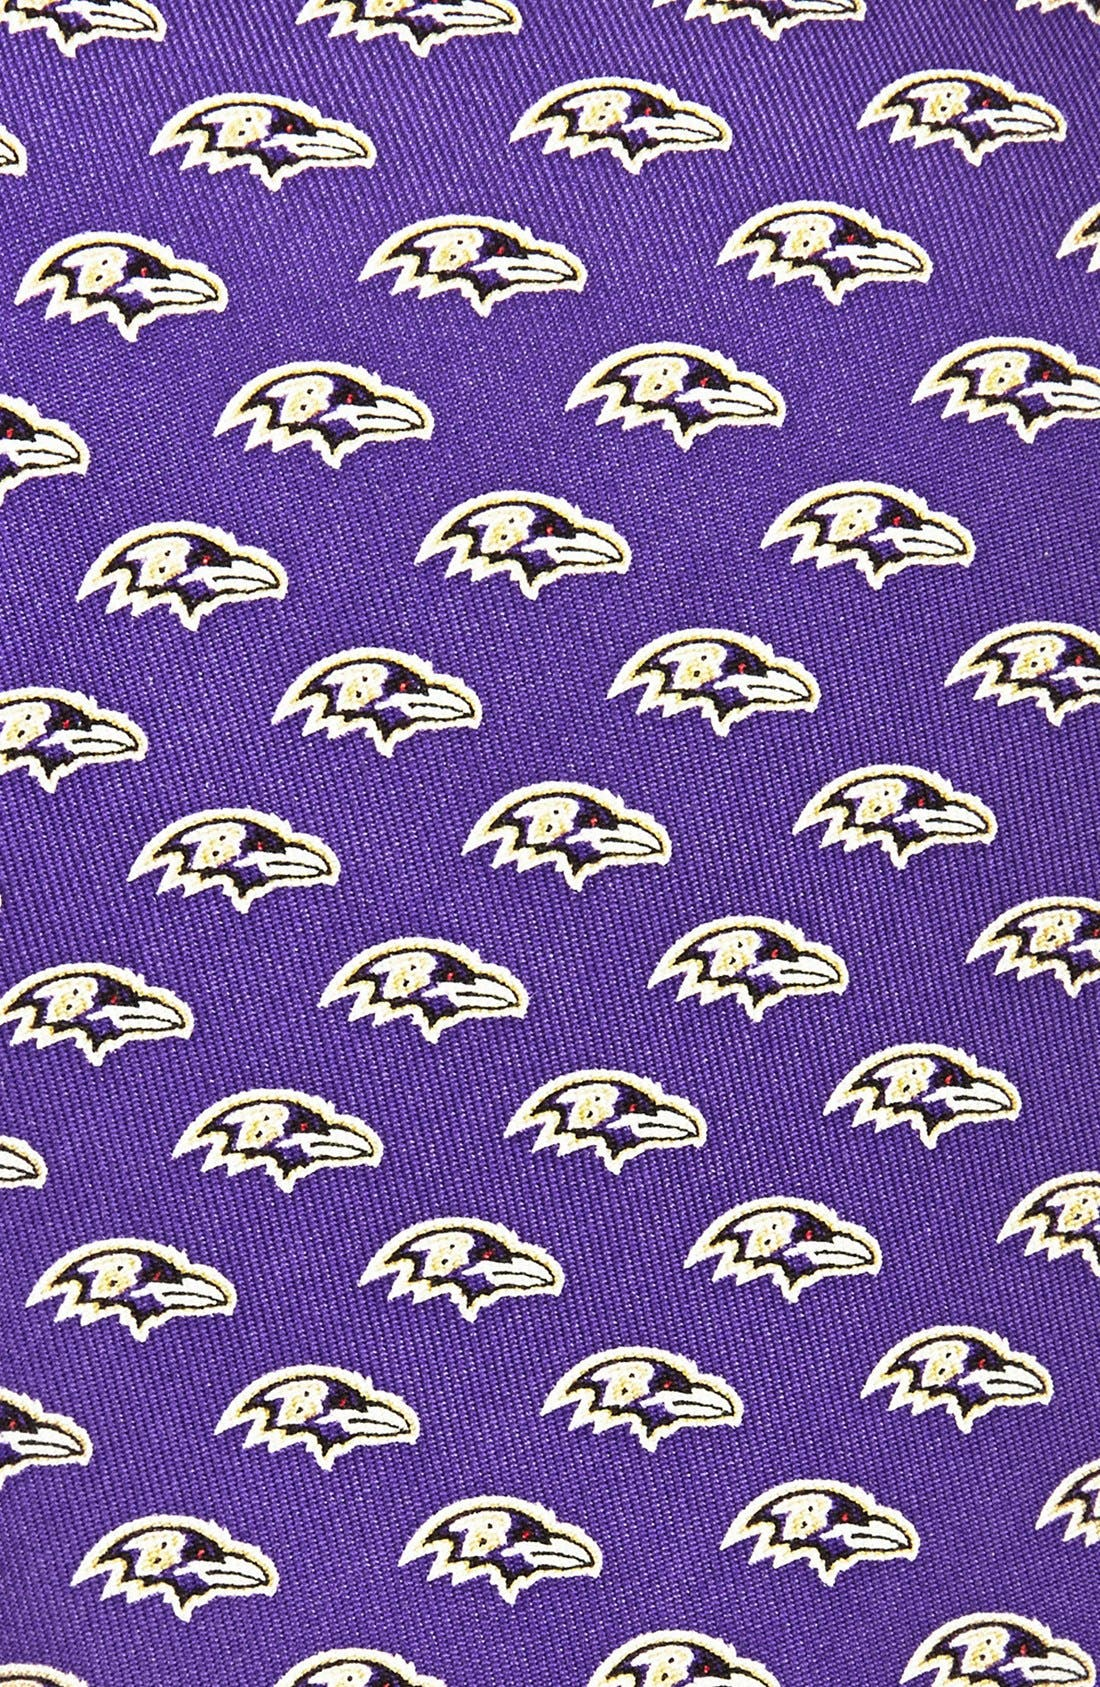 Baltimore Ravens - NFL Woven Silk Tie,                             Alternate thumbnail 2, color,                             Purple